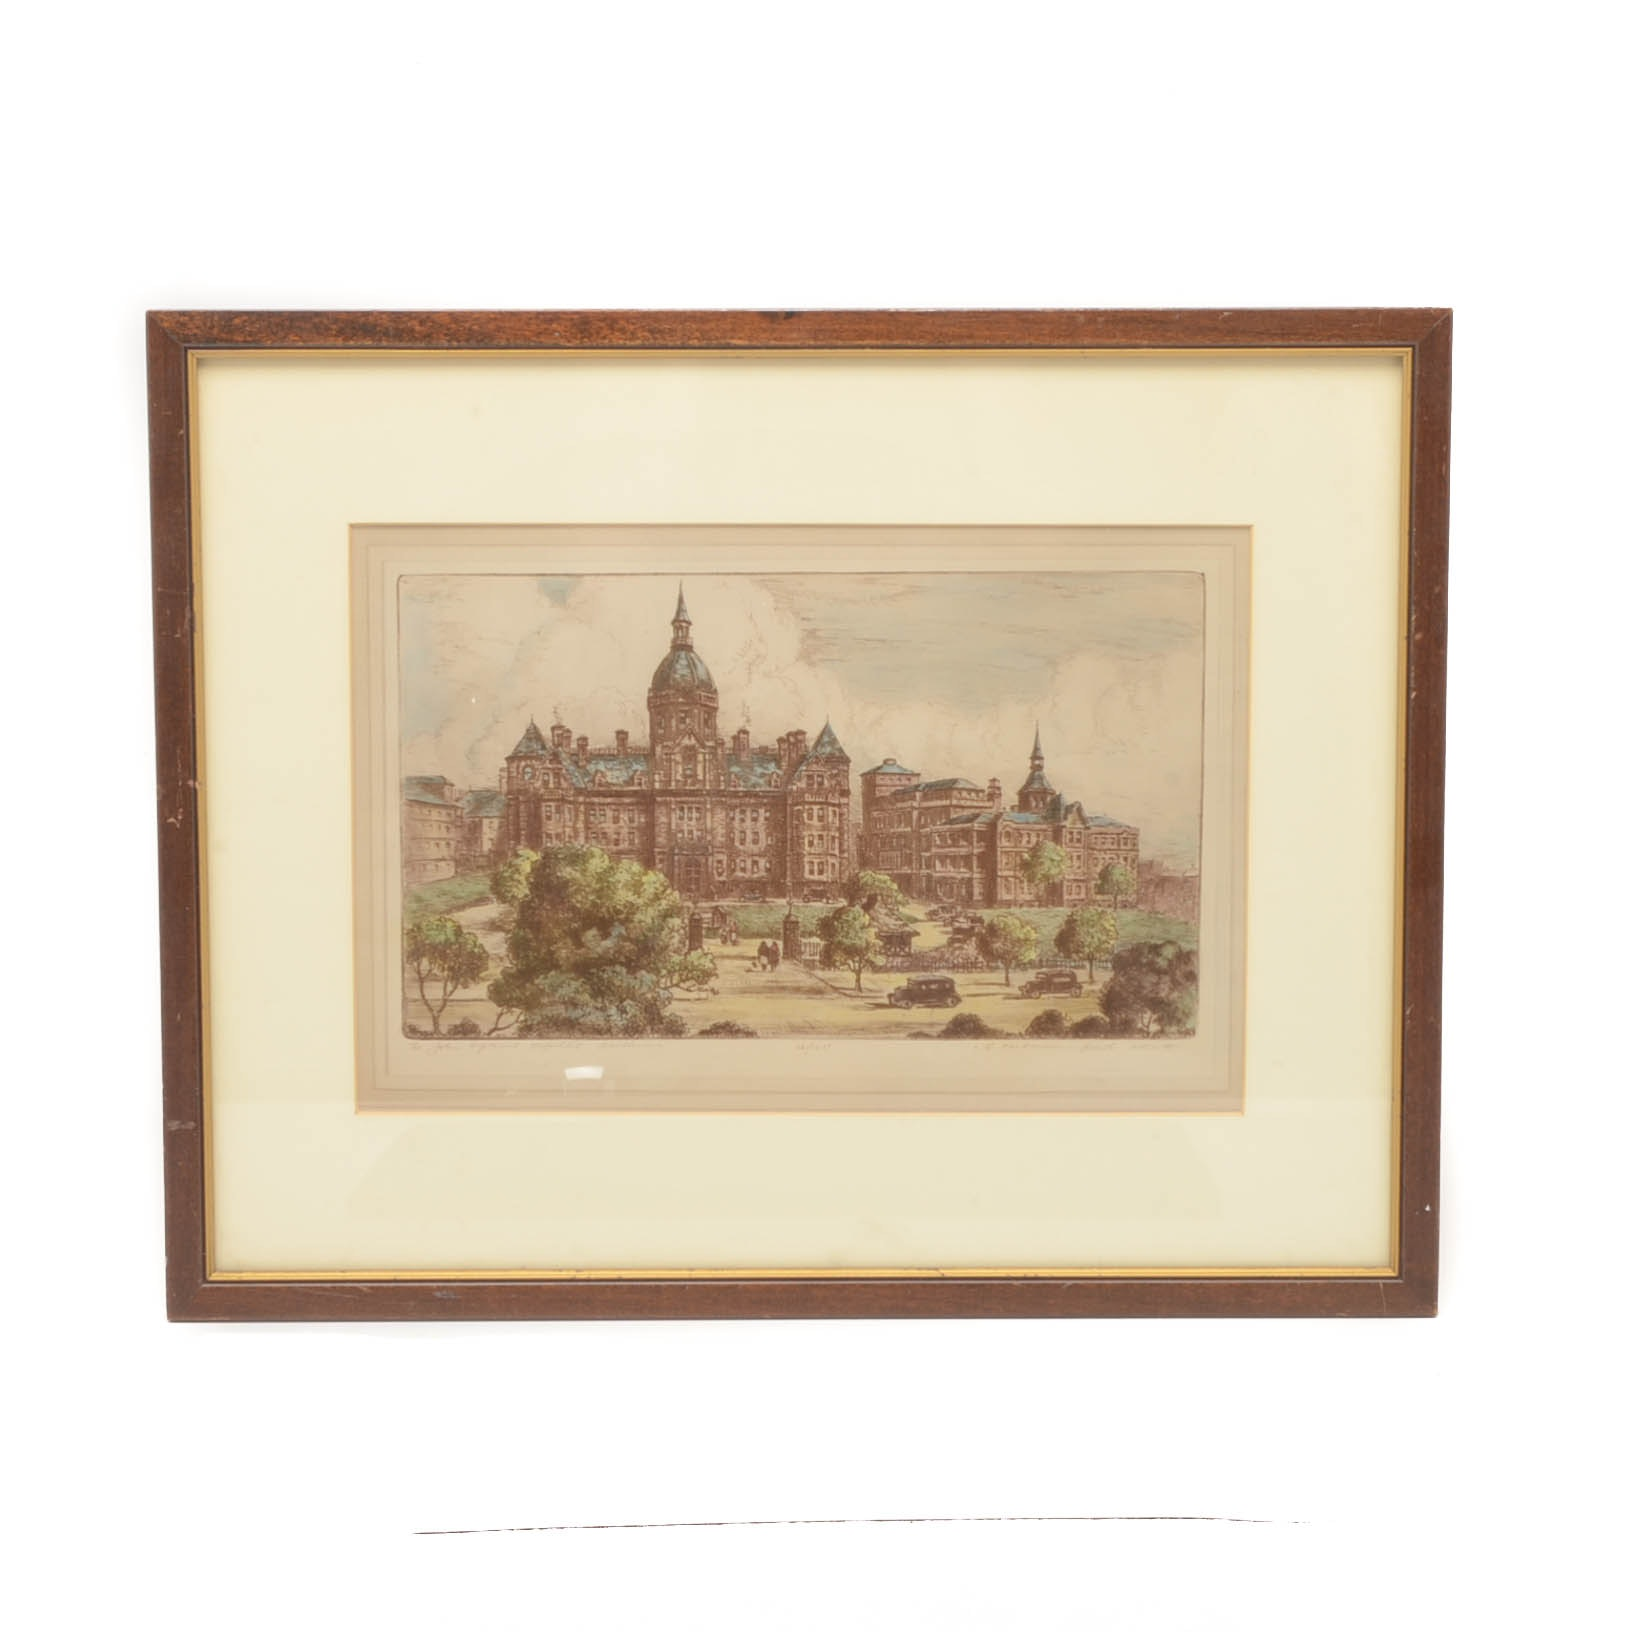 Robert Herdman-Smith Hand-colored Etching of Johns Hopkins Hospital